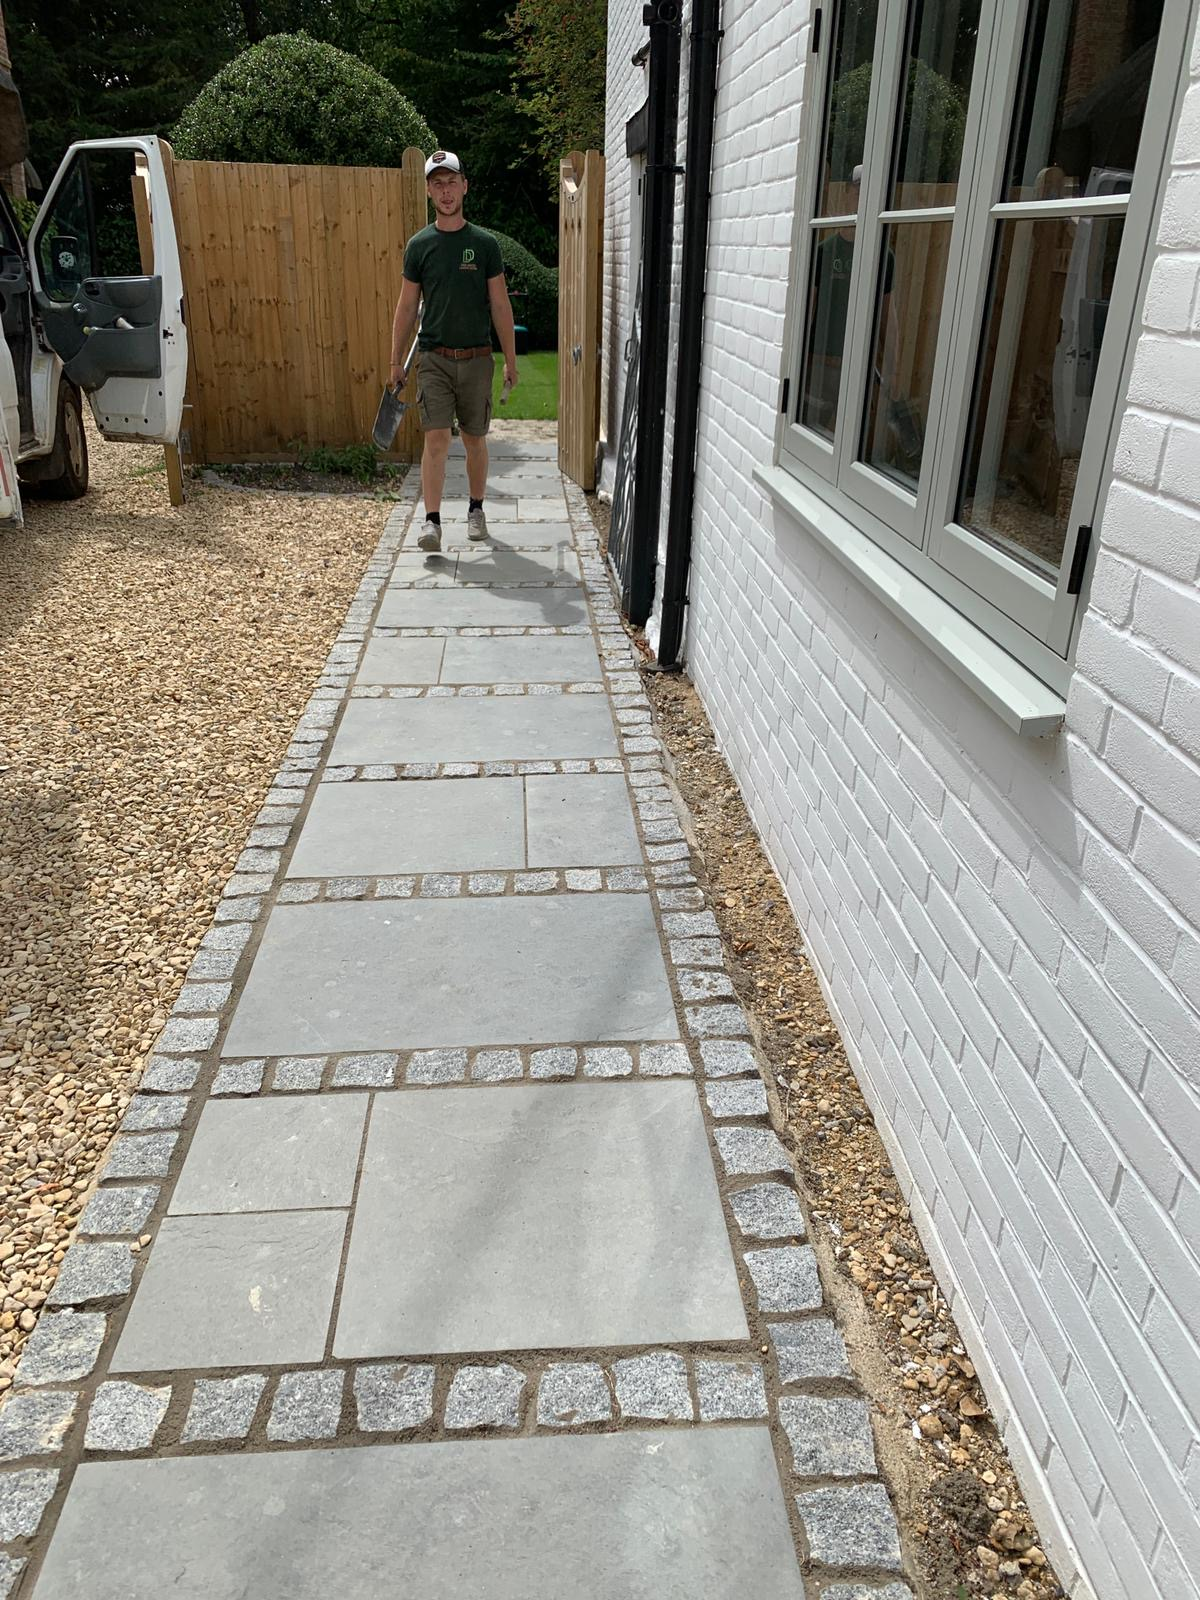 Quirky blockwork path